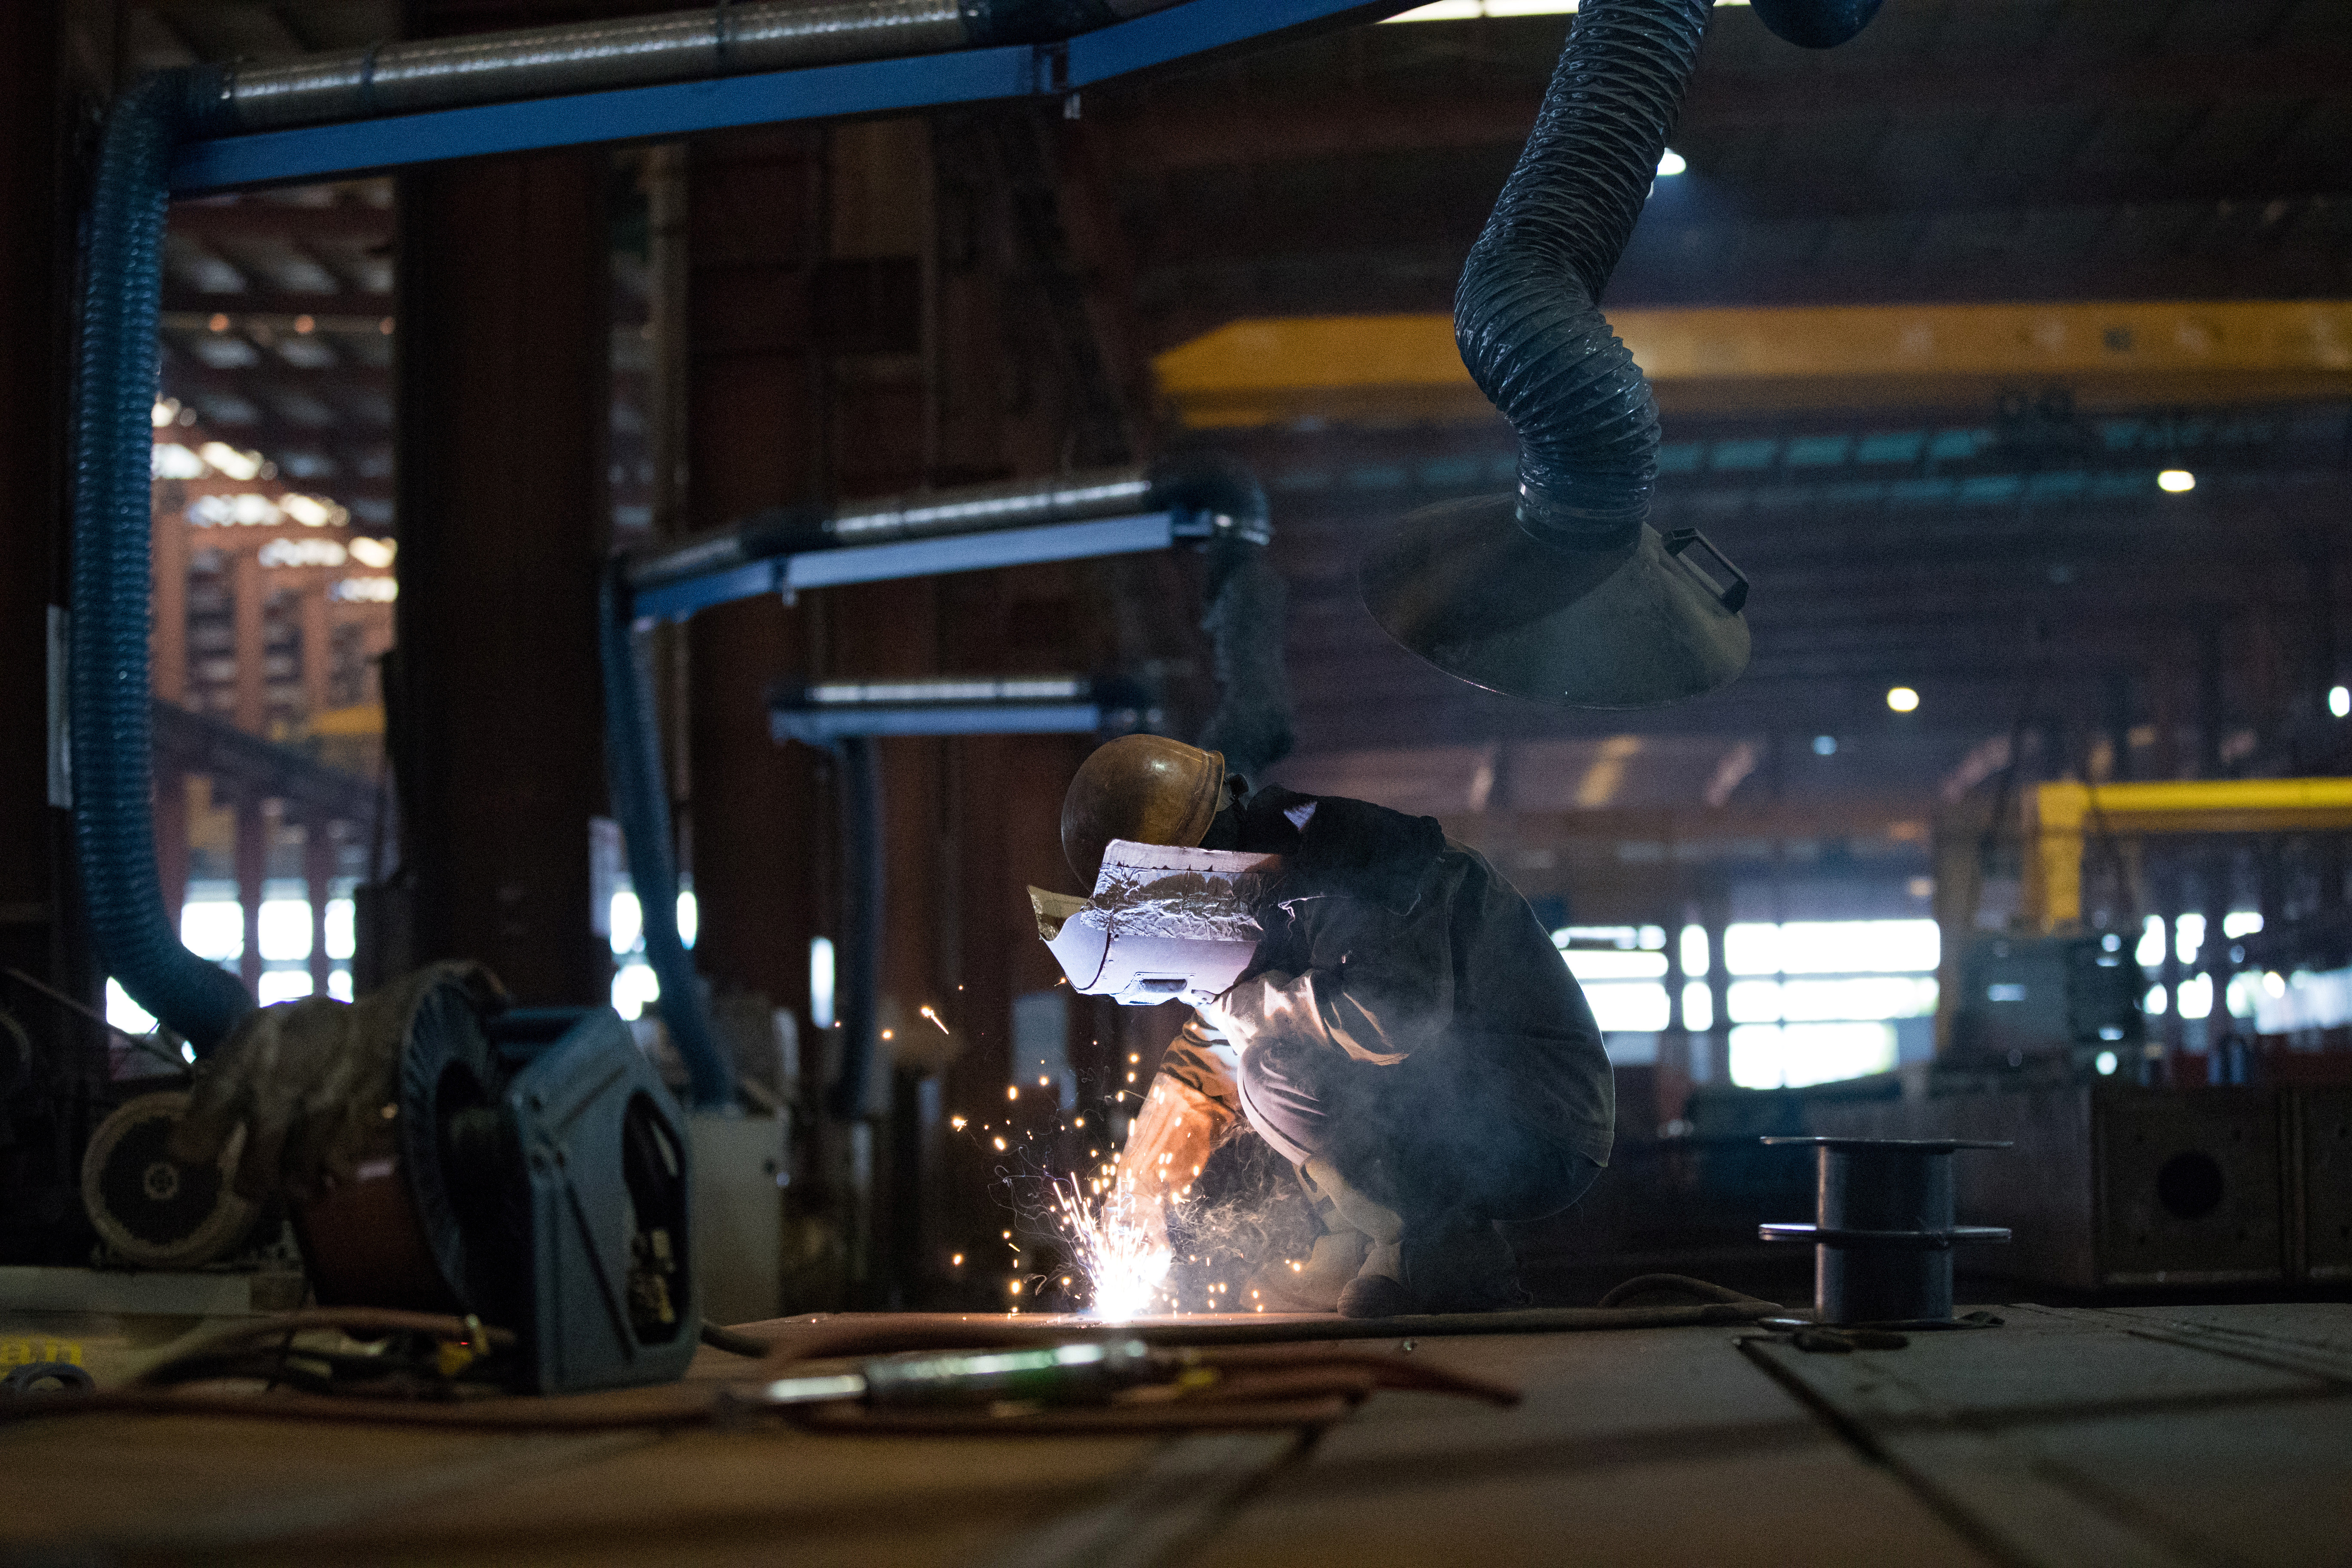 An employee works at a steel processing production line at a factory in Hefei, Anhui province, China February 21, 2020. China Daily via REUTERS